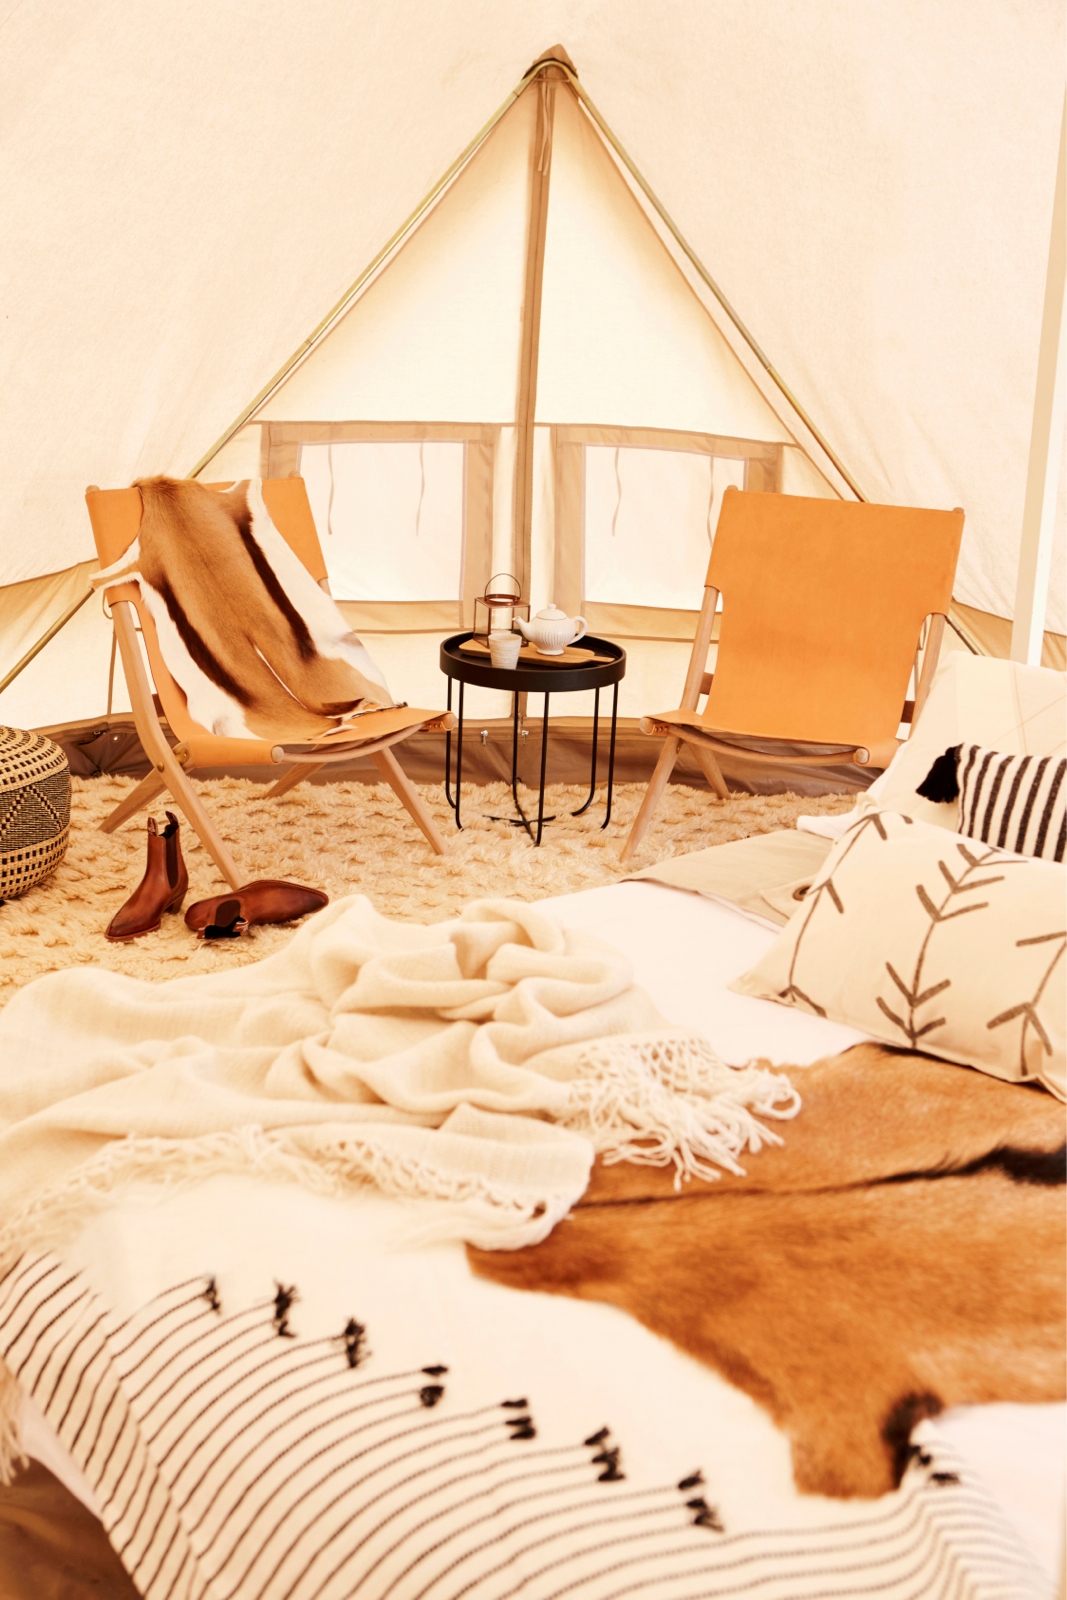 Interior 6m diameter Emperor Twin Bell Tent Glamping Tent, natural canvas, camping glamping, african safari